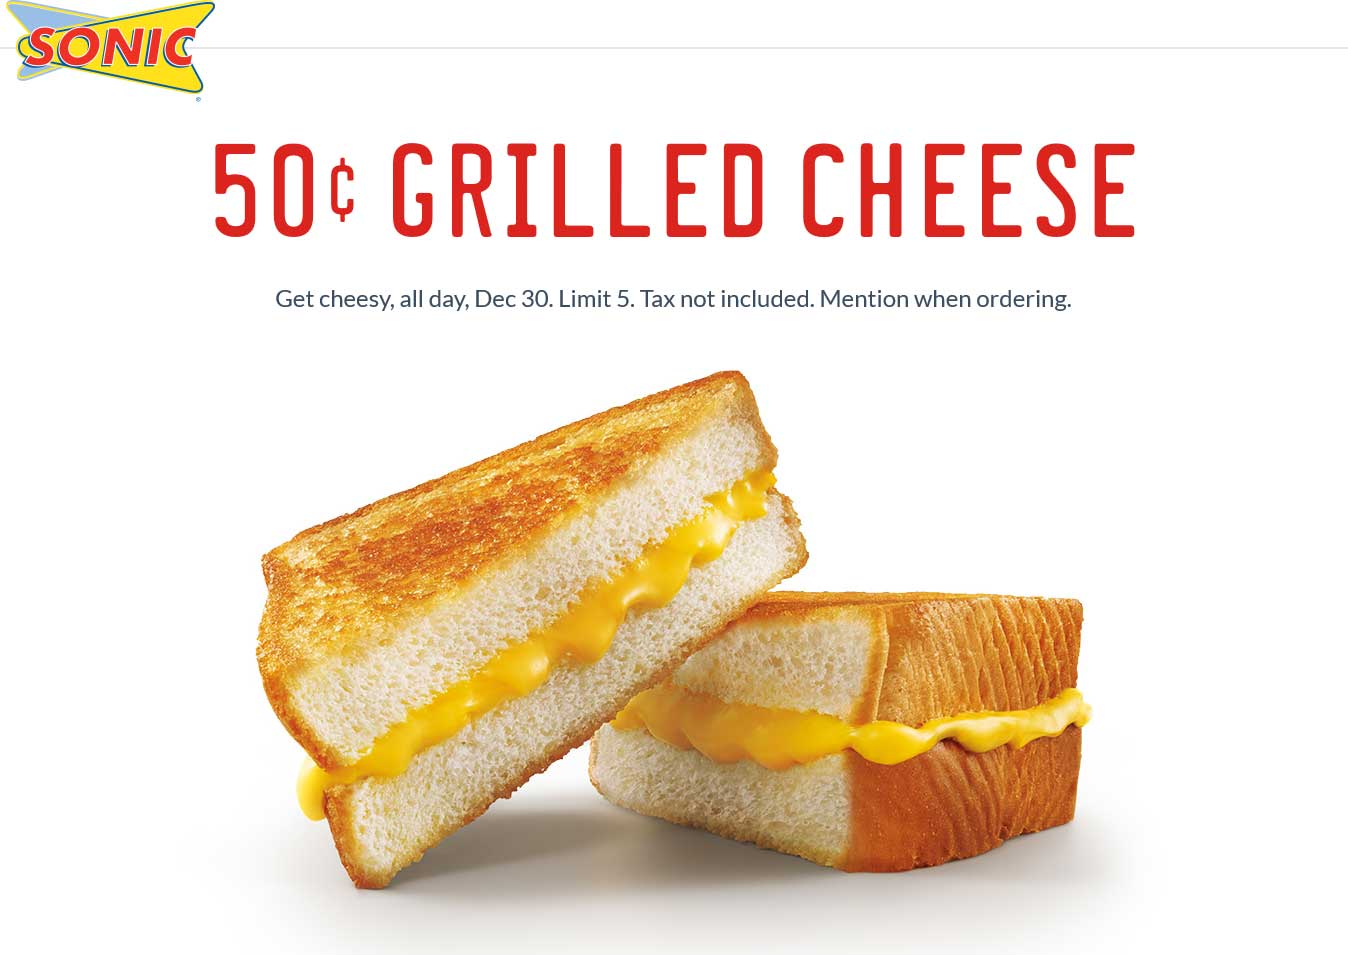 Sonic Drive-In Coupon August 2017 Grilled cheese for .50 cents Wednesday at Sonic Drive-In